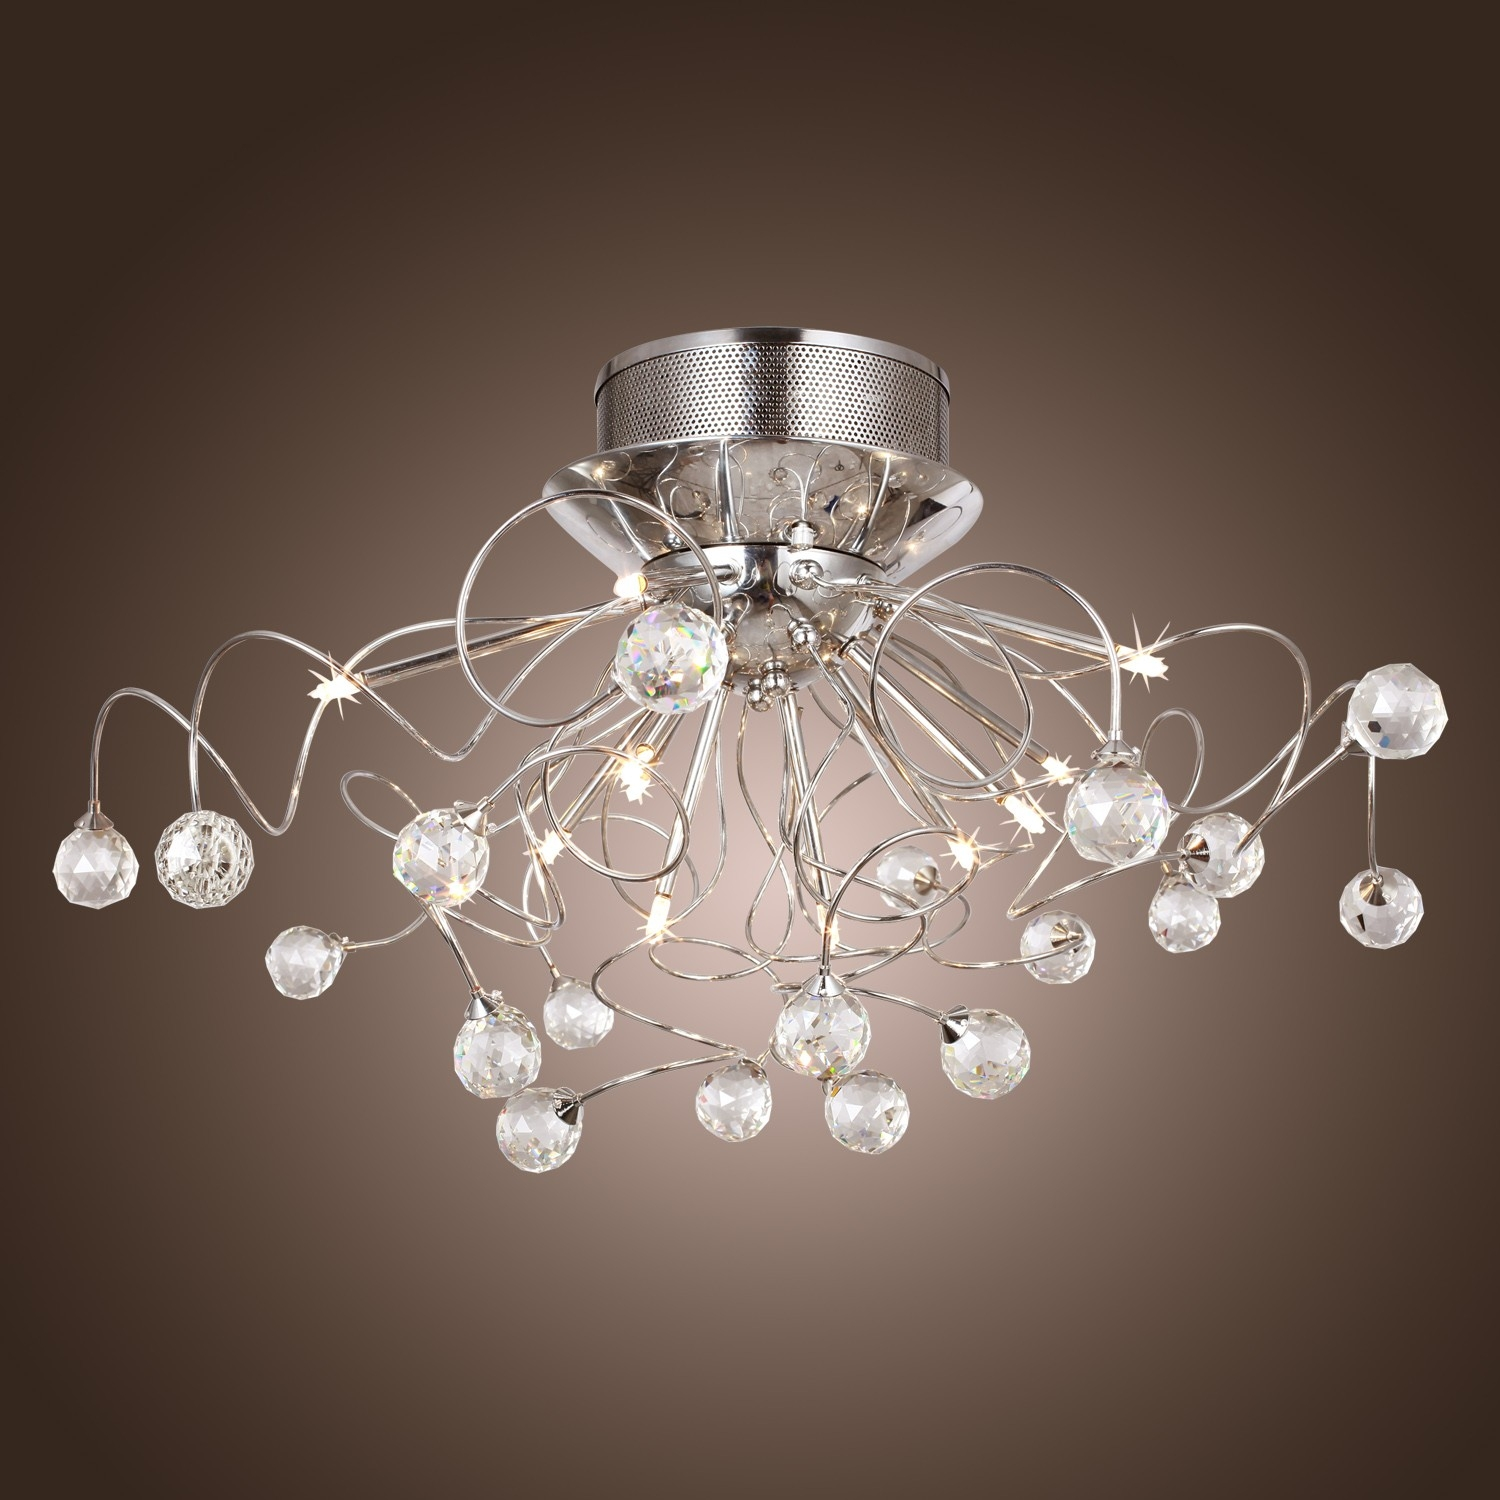 Modern Crystal Chandelier With 11 Lights Chrom Flush Mount With Regard To Hallway Chandeliers (View 7 of 25)